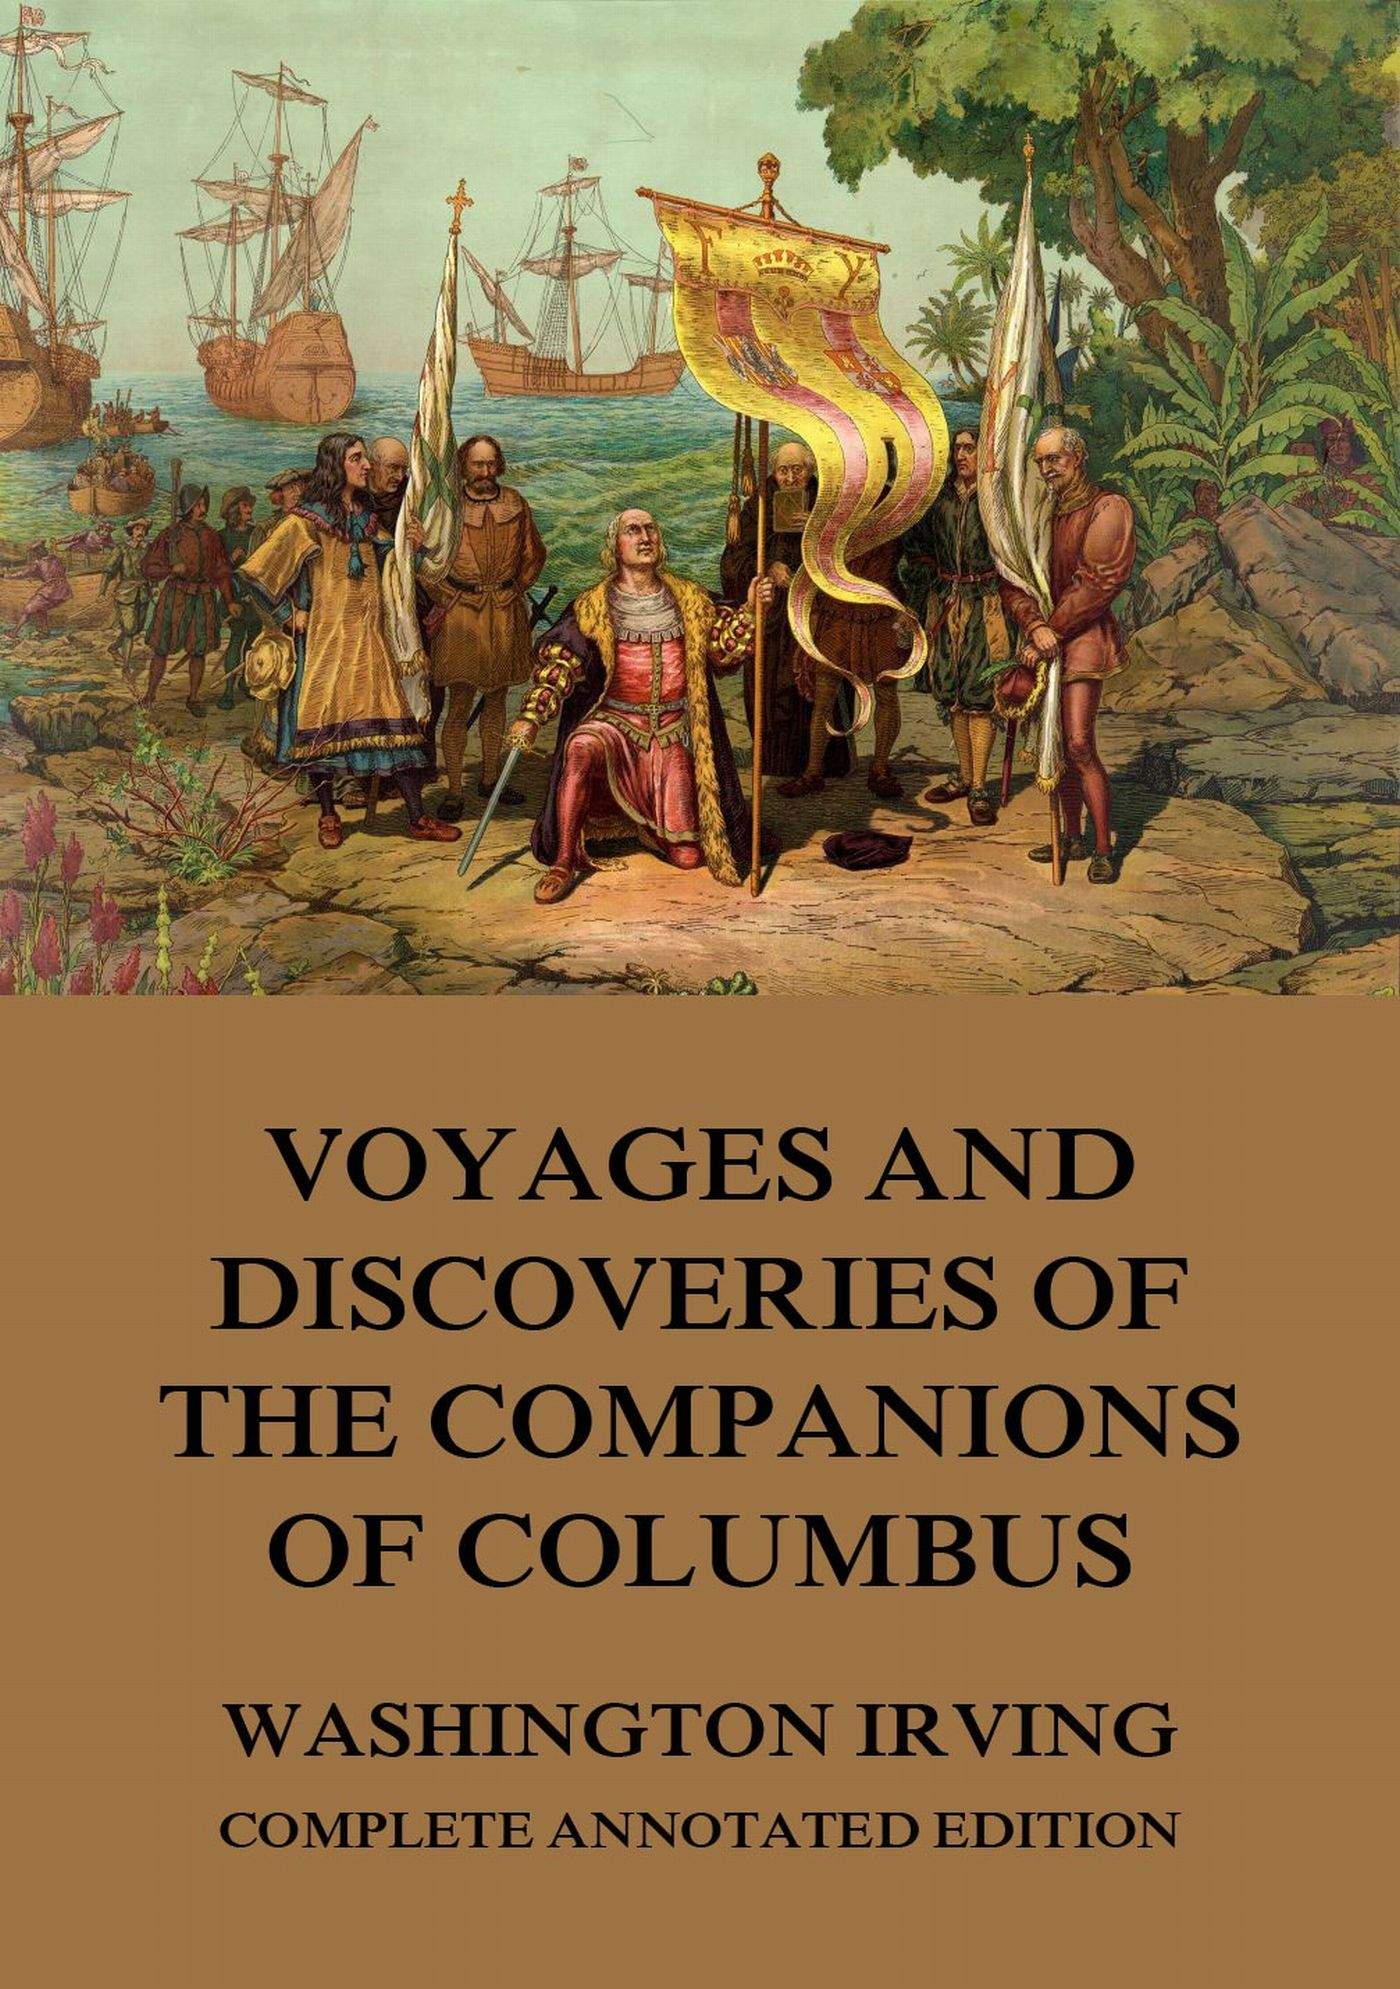 Washington Irving Voyages And Discoveries Of The Companions Of Columbus